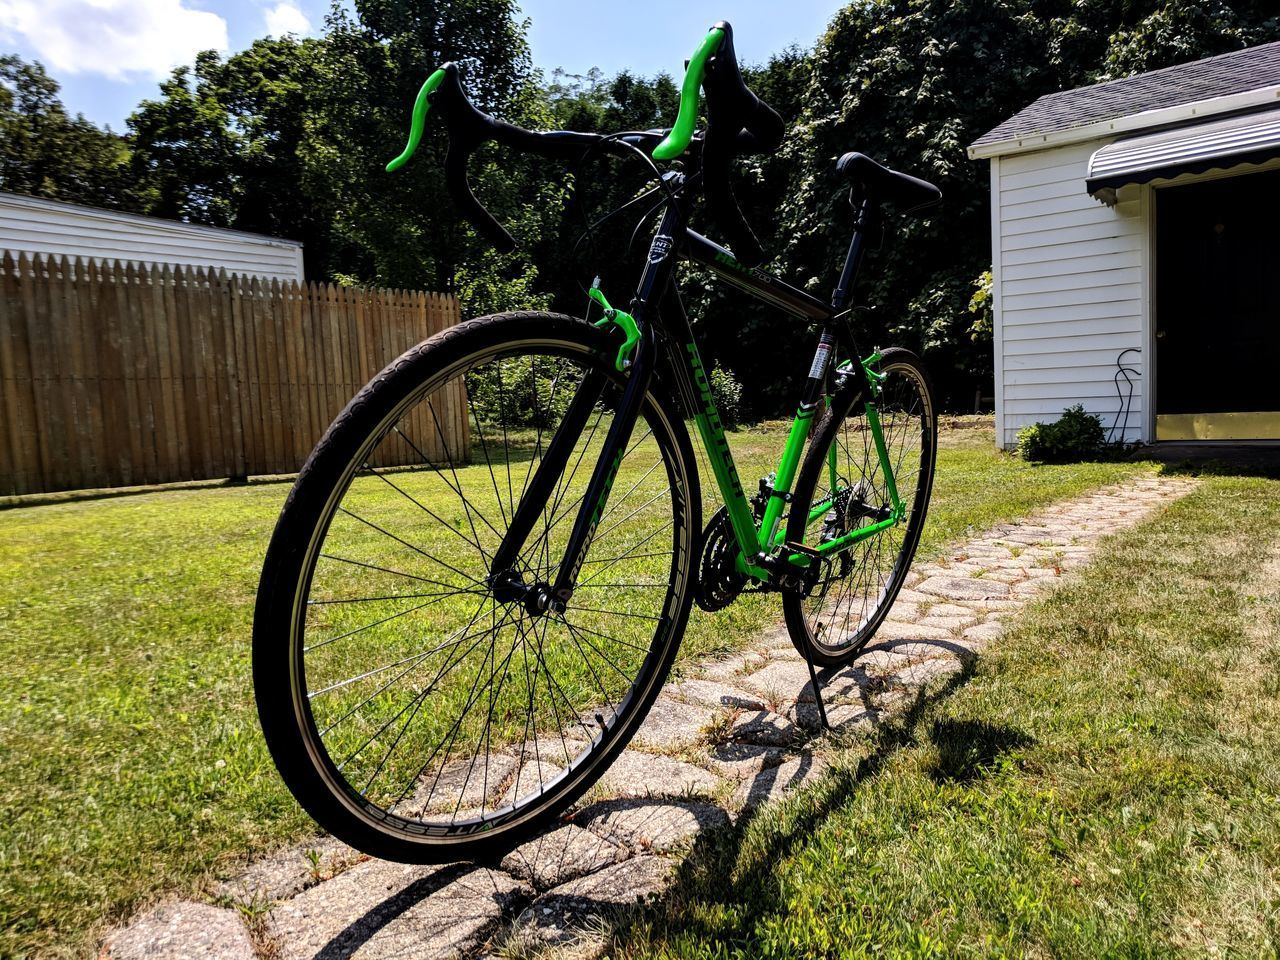 bicycle, plant, grass, land vehicle, transportation, built structure, mode of transportation, building exterior, architecture, nature, tree, day, no people, field, stationary, green color, parking, building, growth, outdoors, wheel